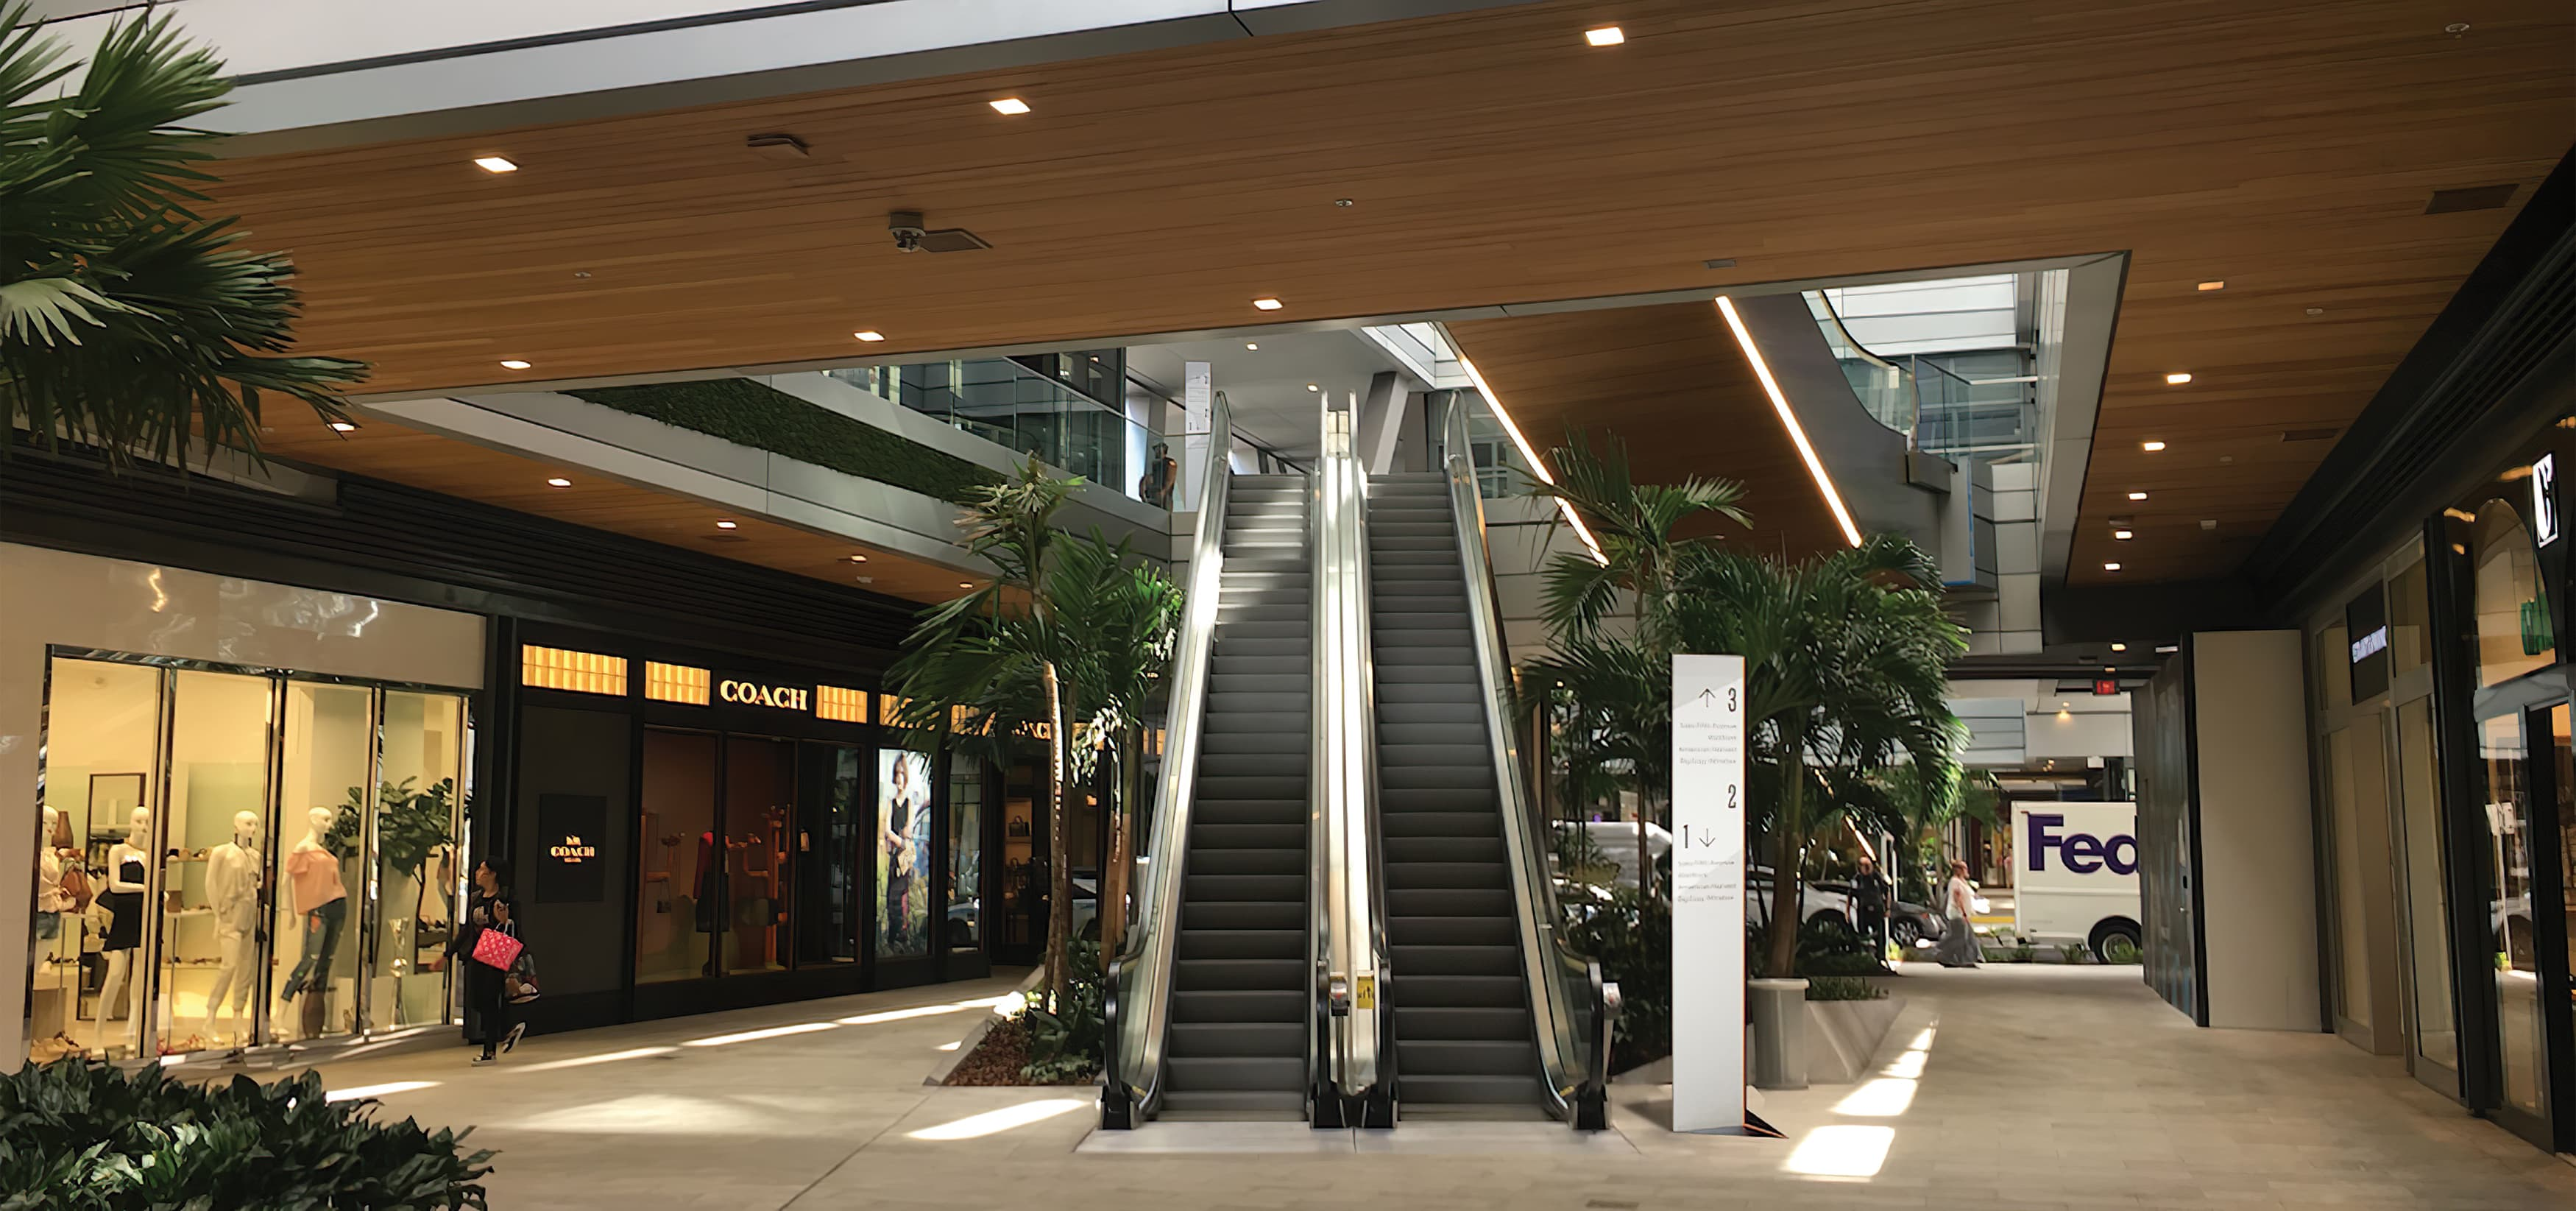 Brickell City Center, a civic, mixed-use, retail project in Miami, Florida. RSM Design. Environmental Graphic Design, Wayfinding Signage.